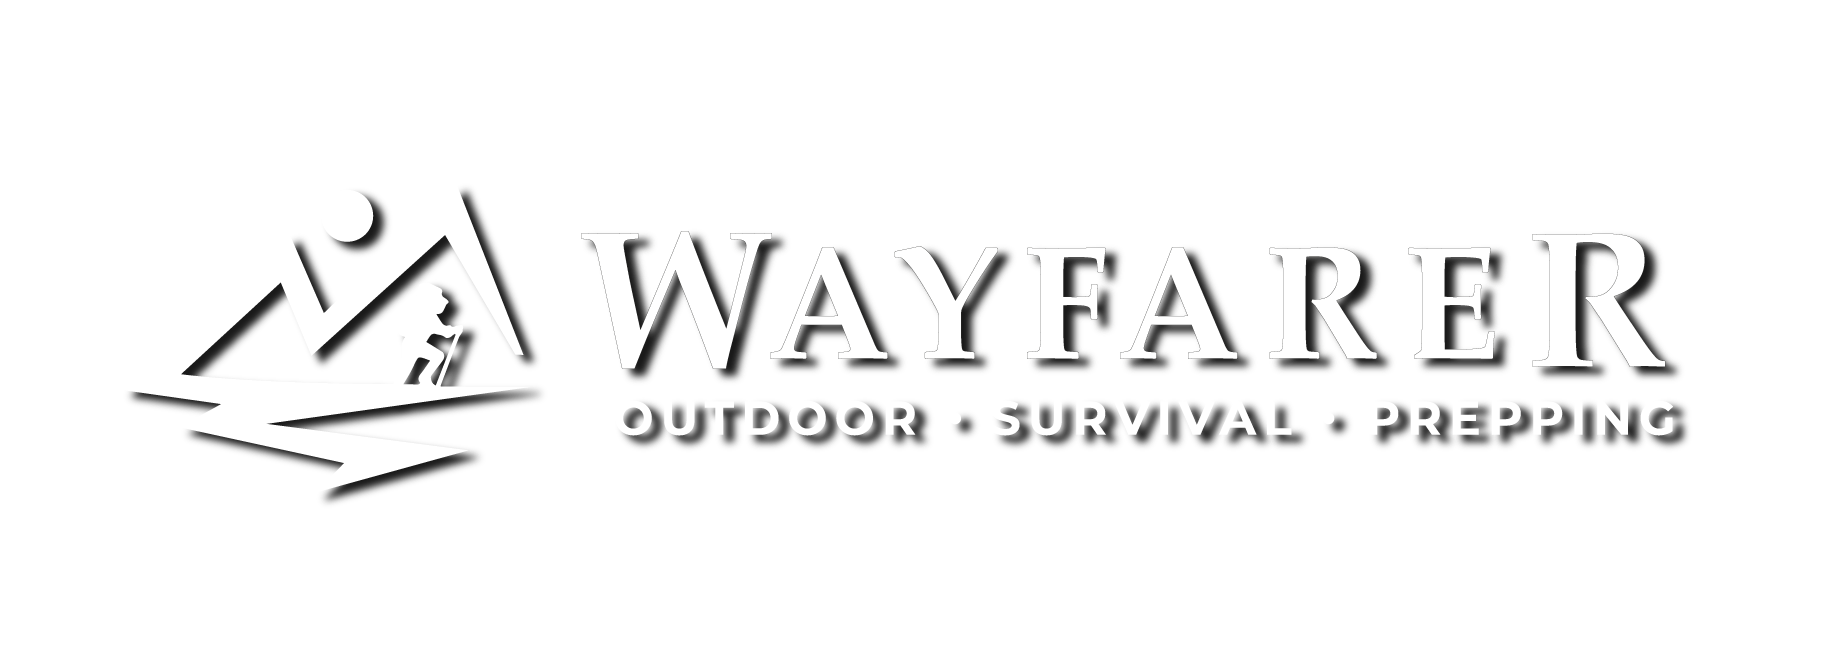 Wayfarer Outdoor Shop